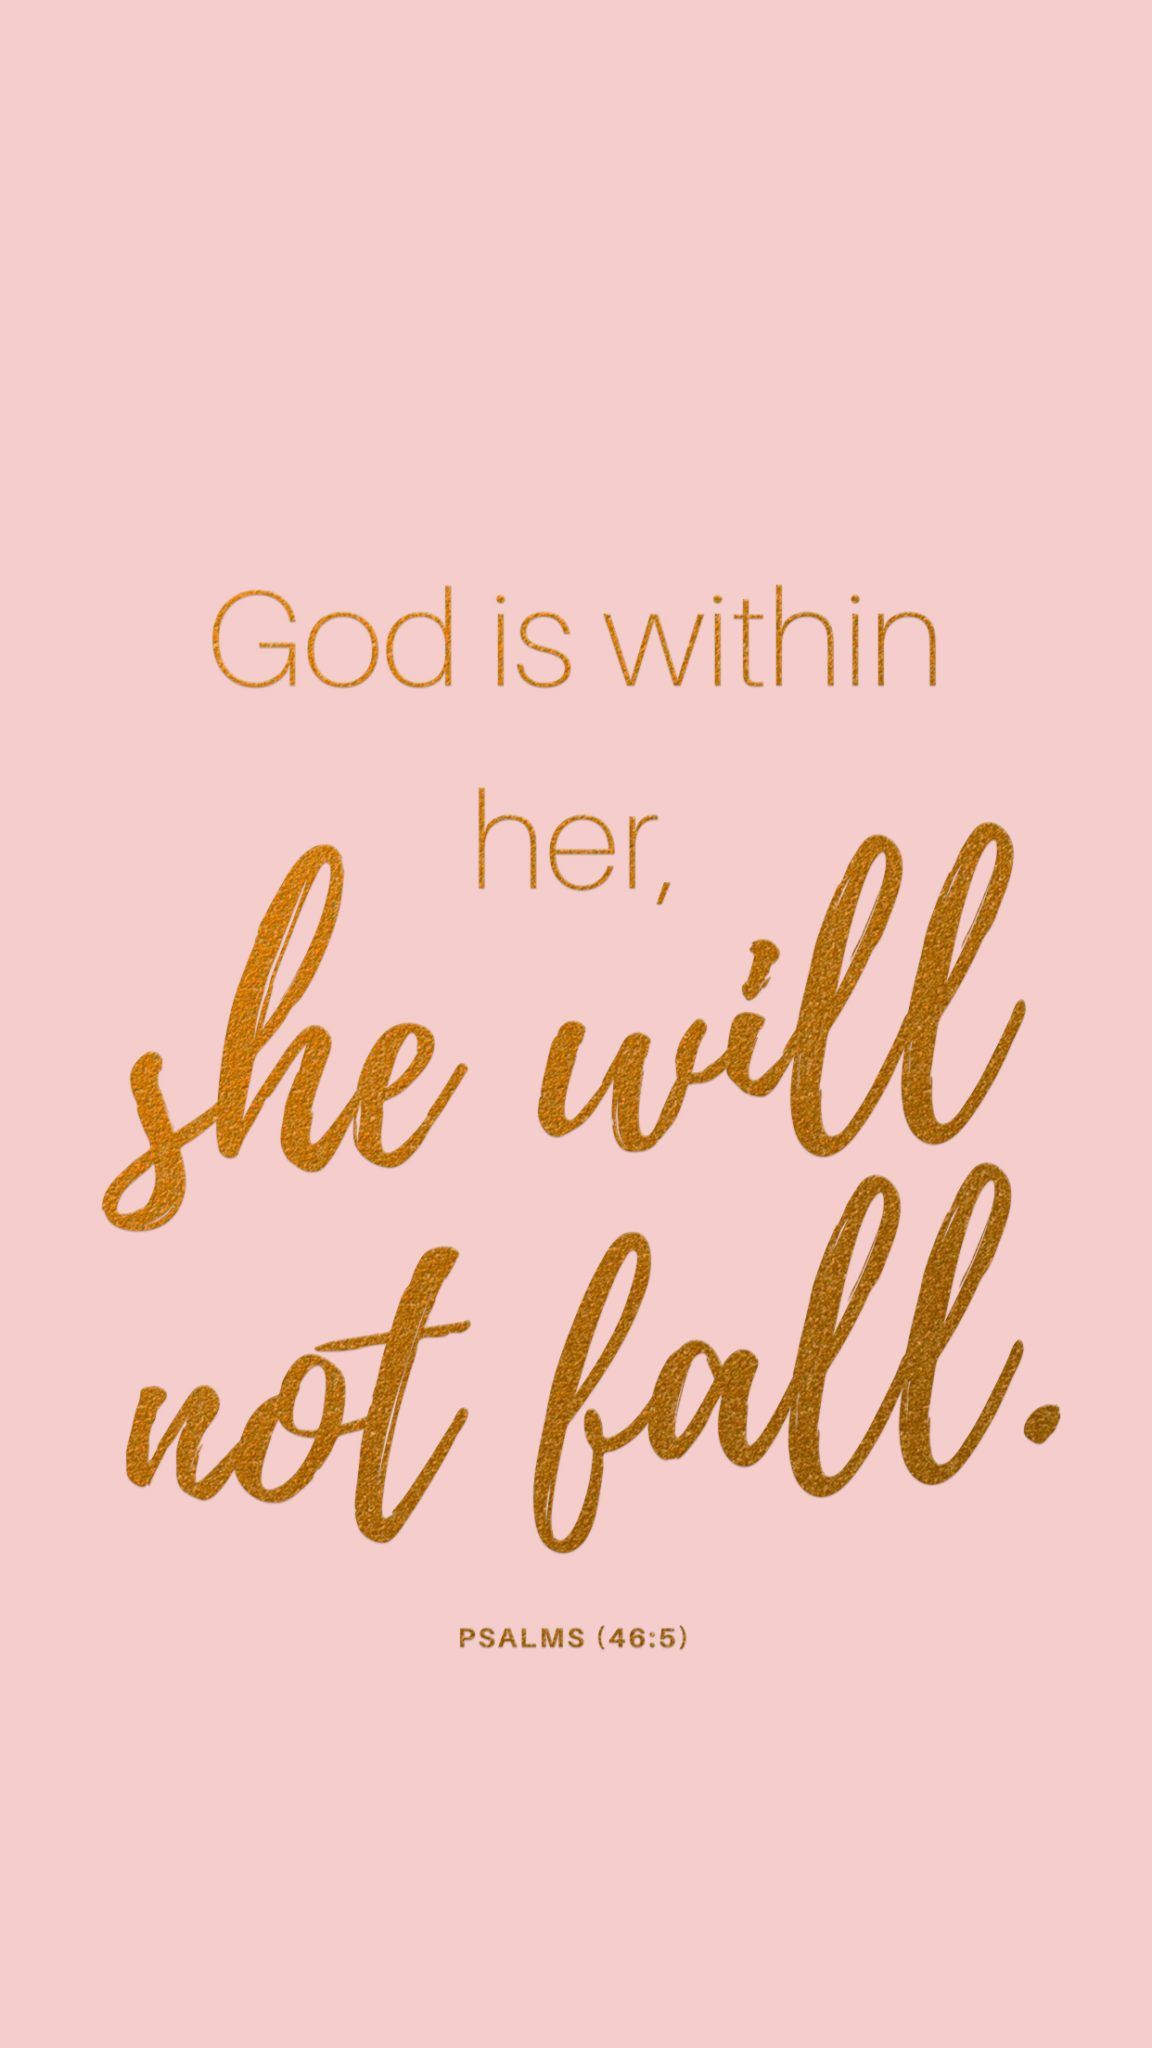 Inspirational Bible Verse Wallpapers Posted By John Anderson